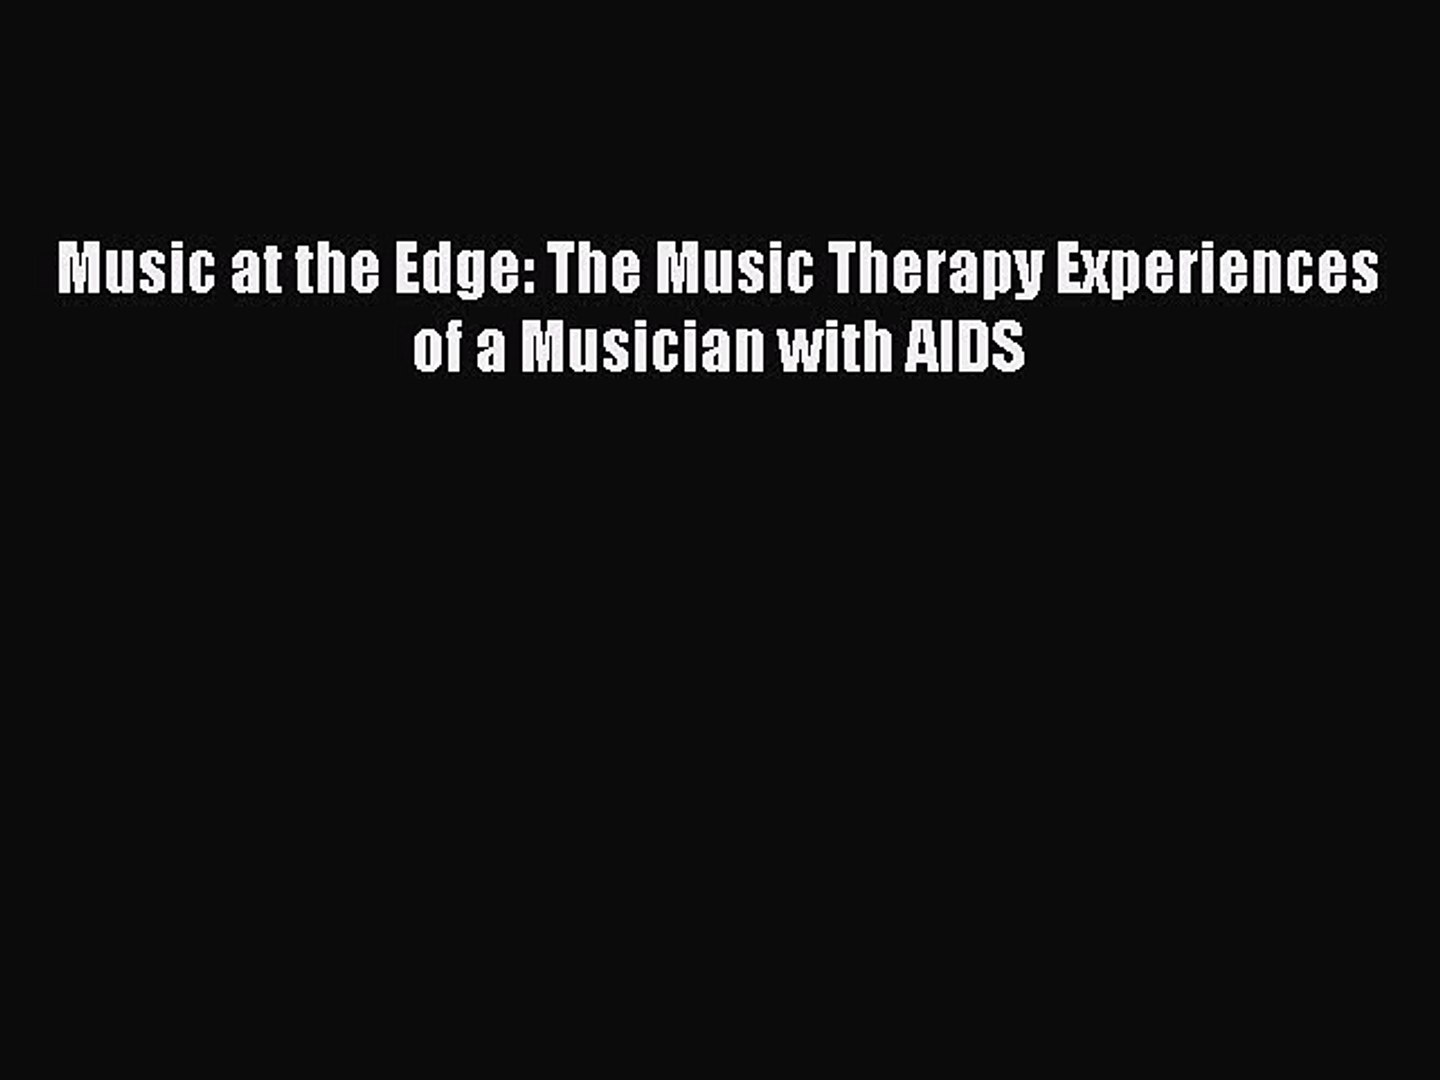 DOWNLOAD FREE E-books  Music at the Edge: The Music Therapy Experiences of a Musician with